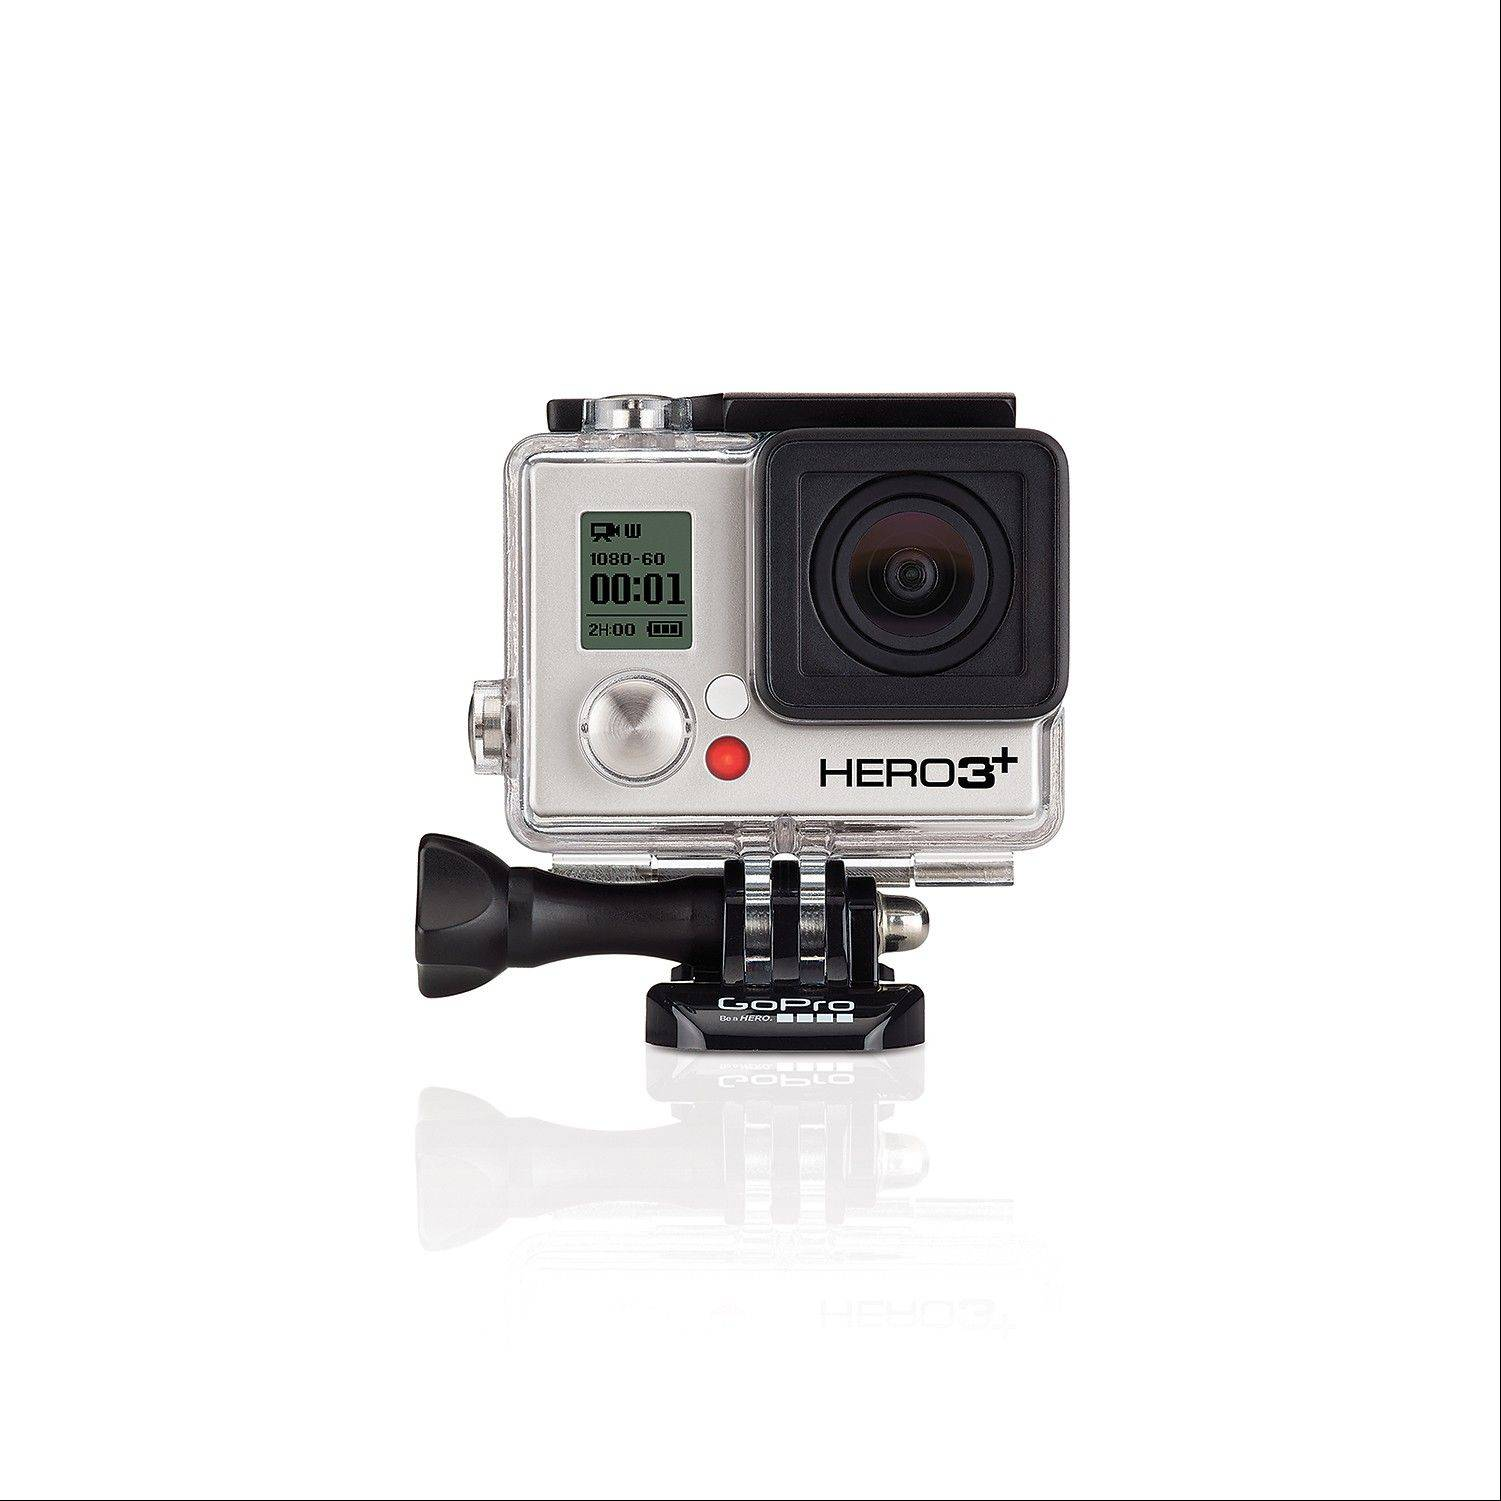 The GoPro digital camera attaches to pretty much anything and can shoot images while you're moving.